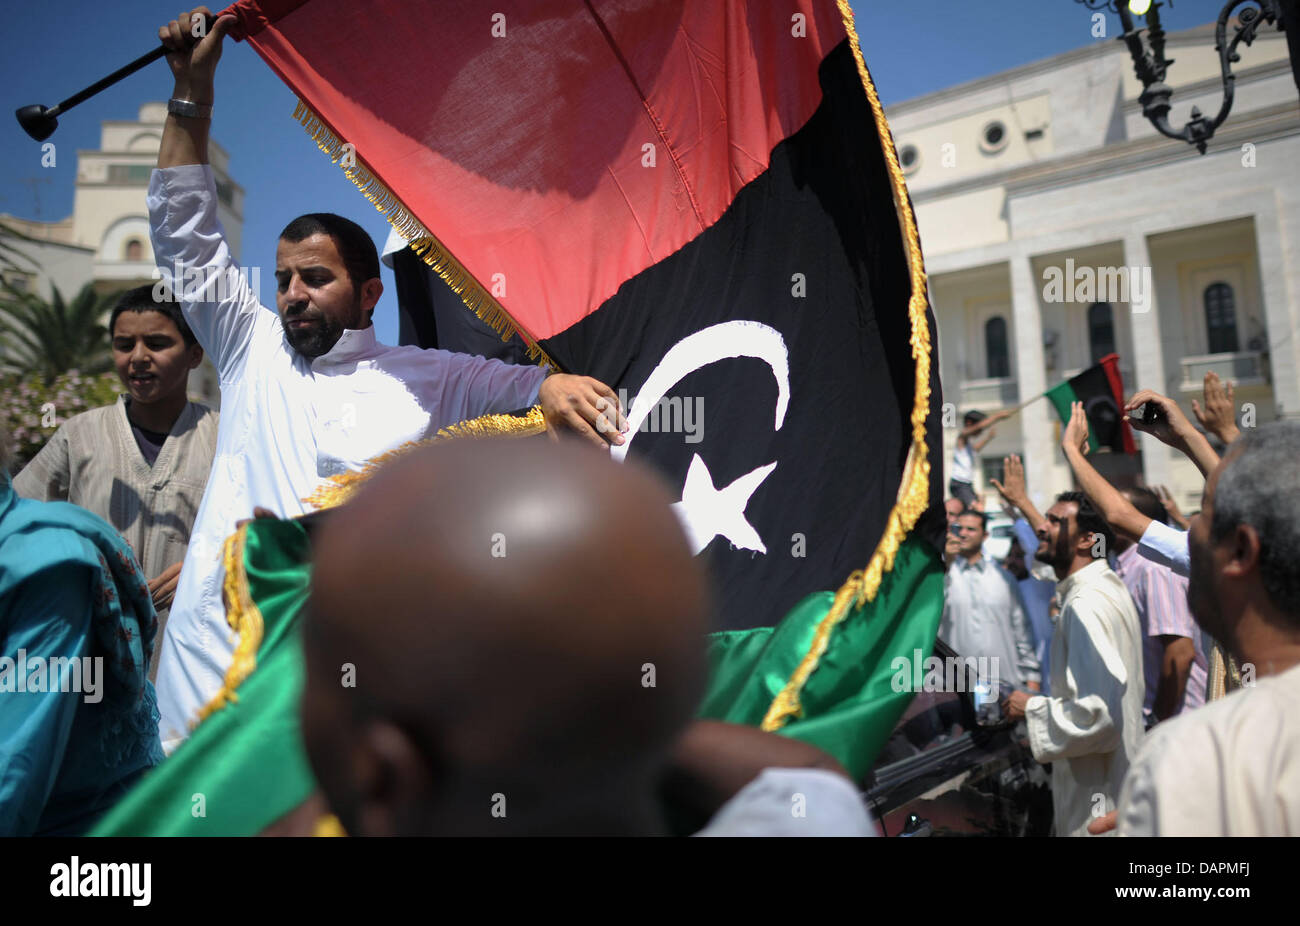 Believers demonstrate on 26 August 2011 after Friday prayers in front of the Al-Kabir mosque in Tripoli, Libya. - Stock Image